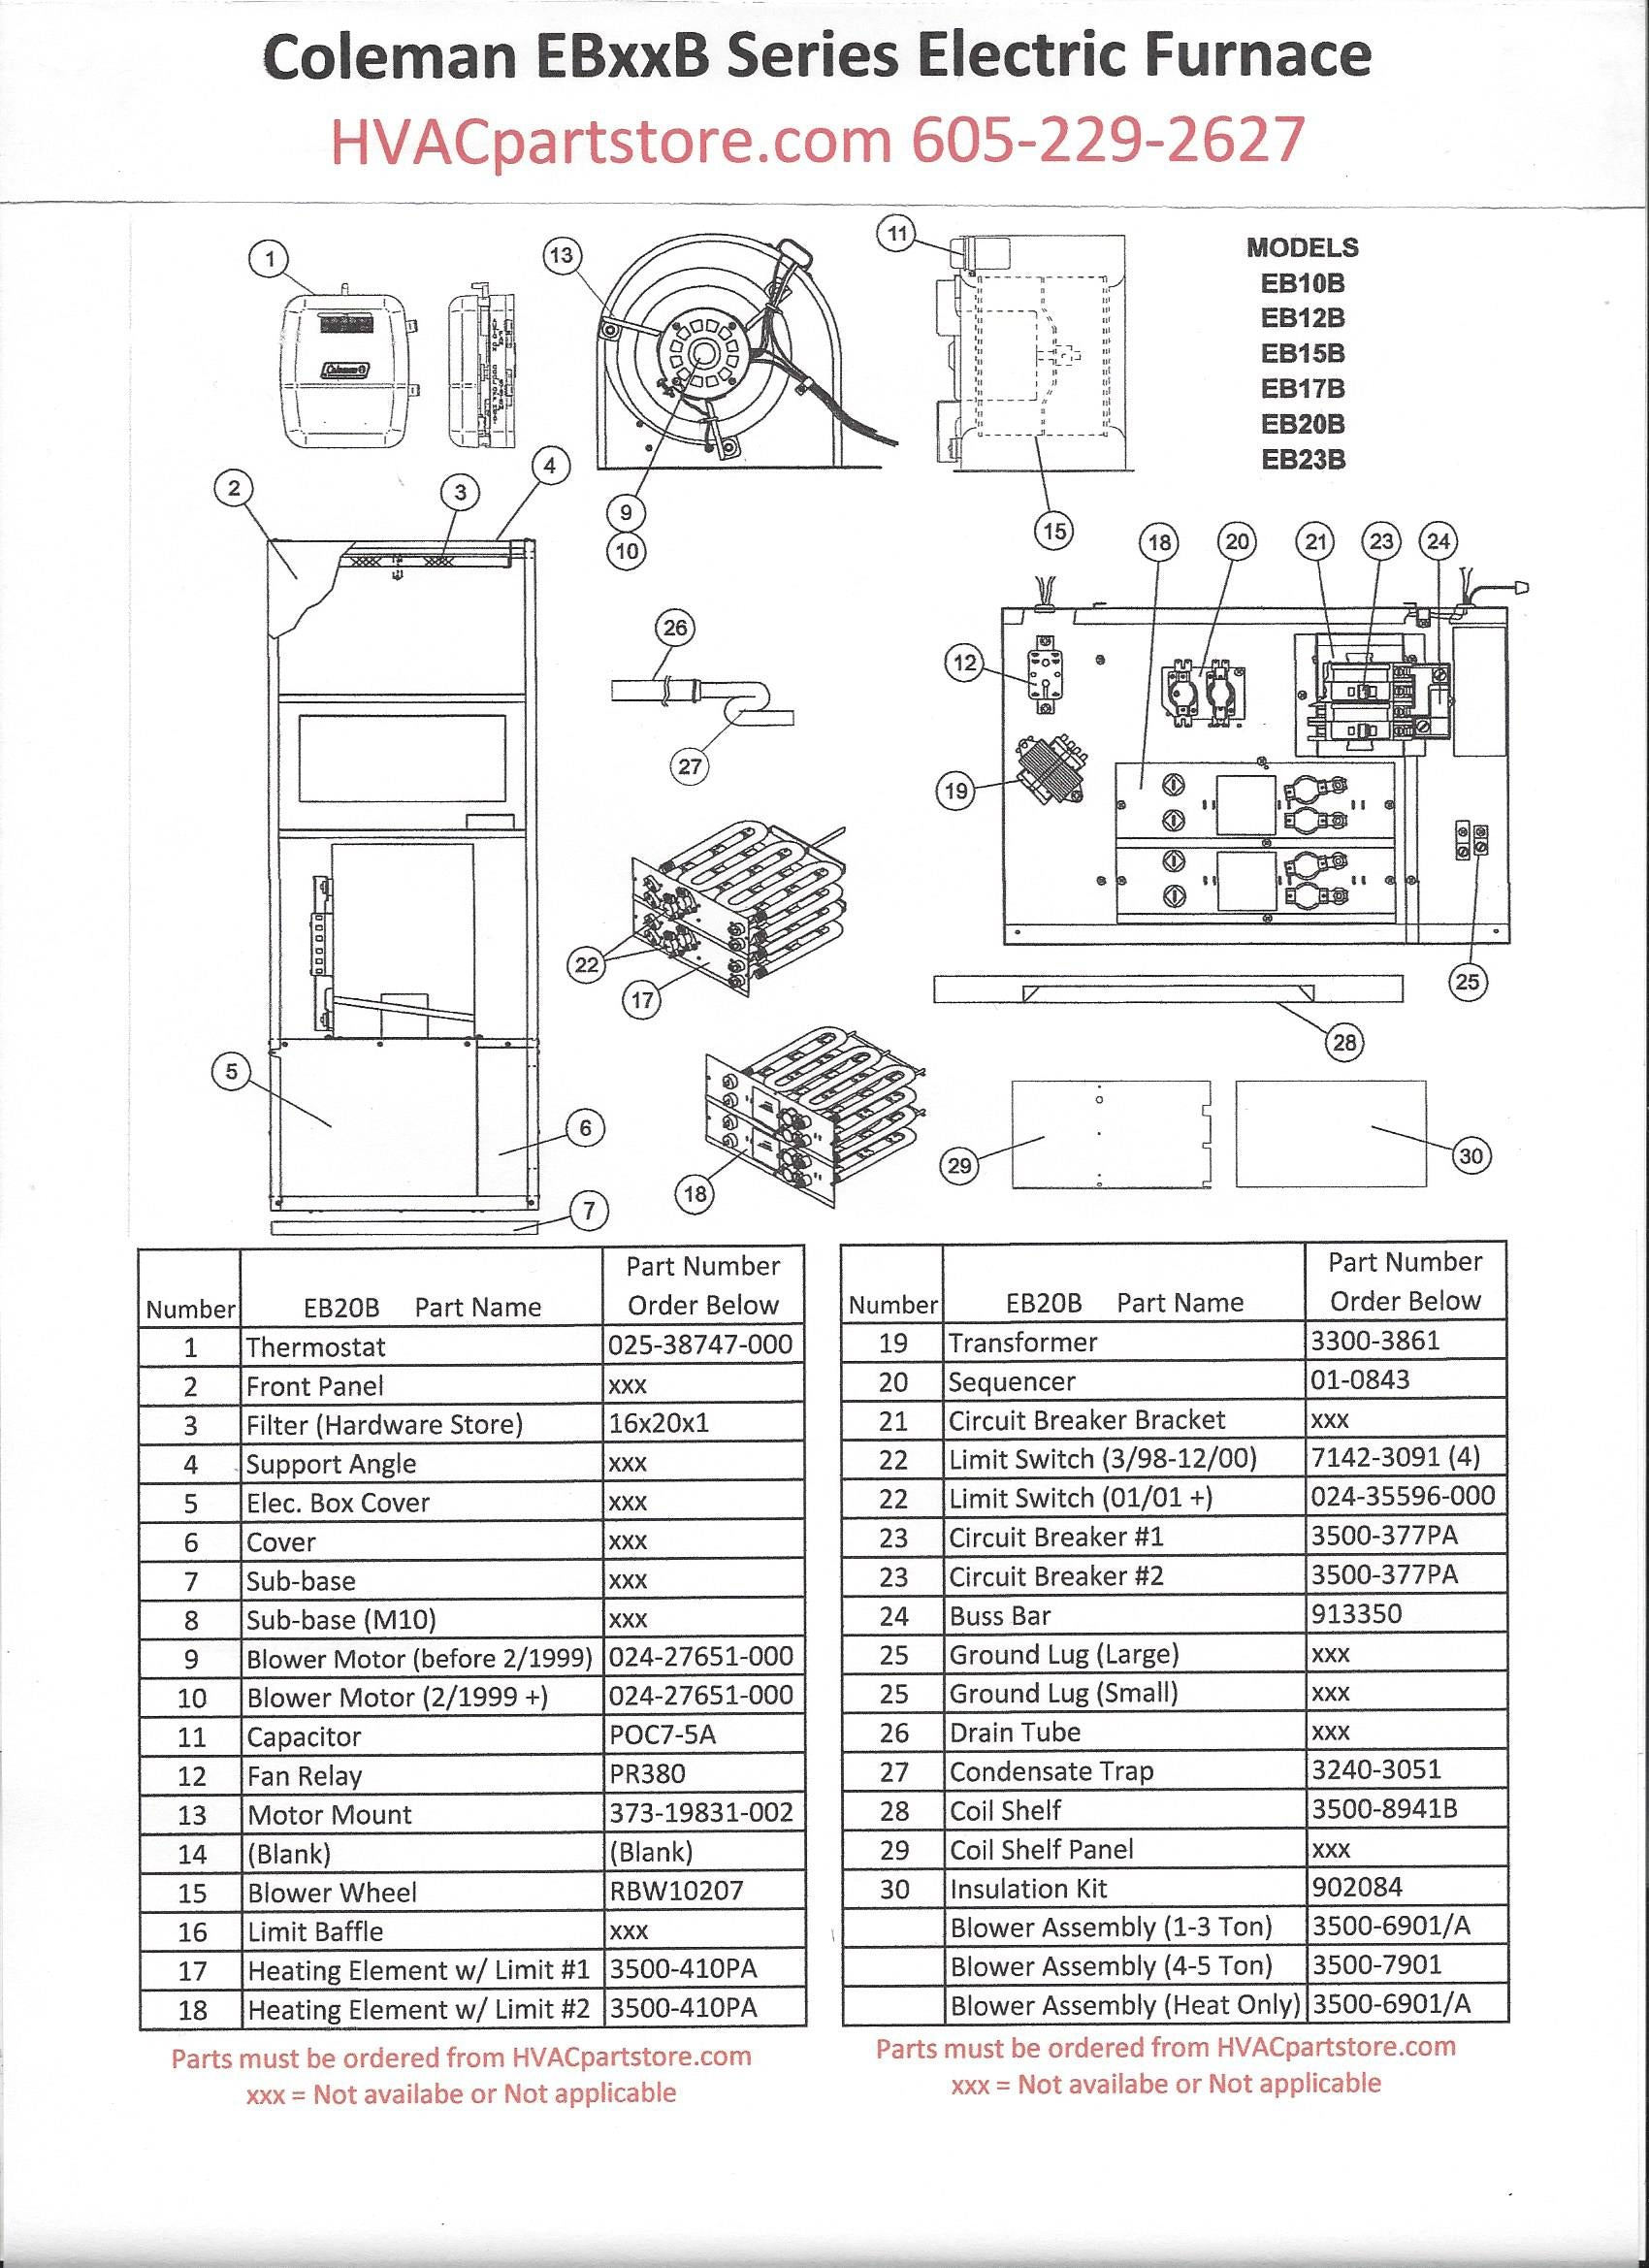 9400 inter heater wiring diagram wiring library  eb20b coleman electric furnace parts hvacpartstore